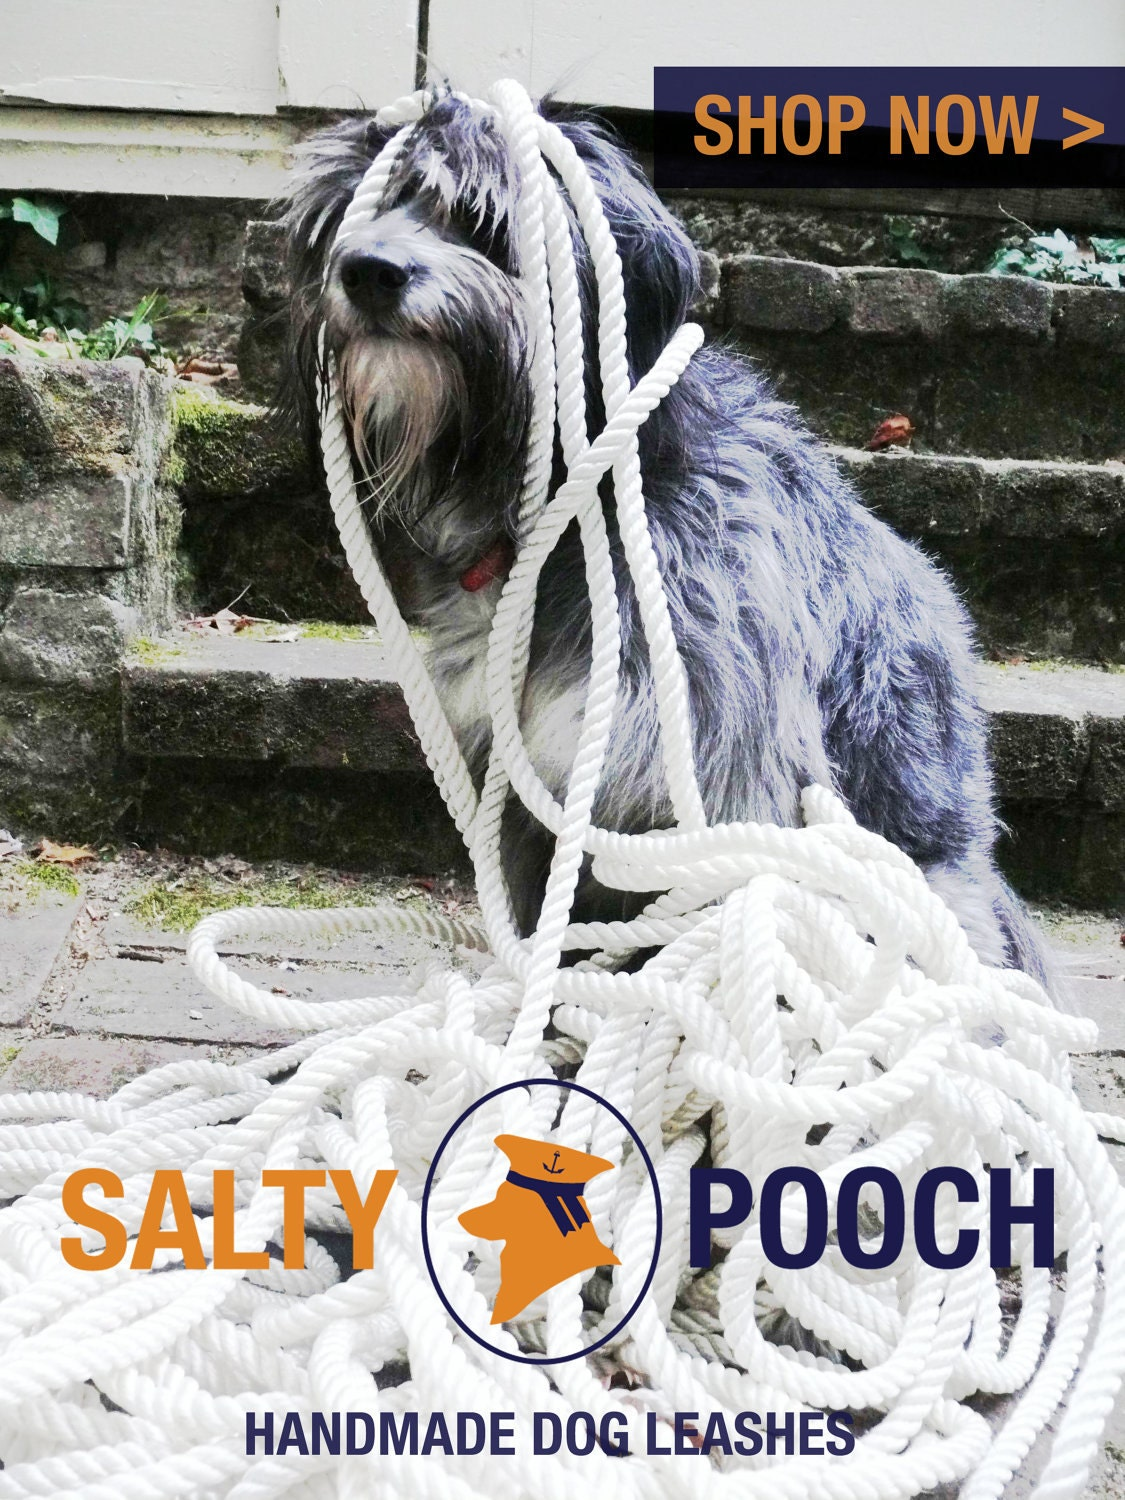 salty pooch handmade leashes